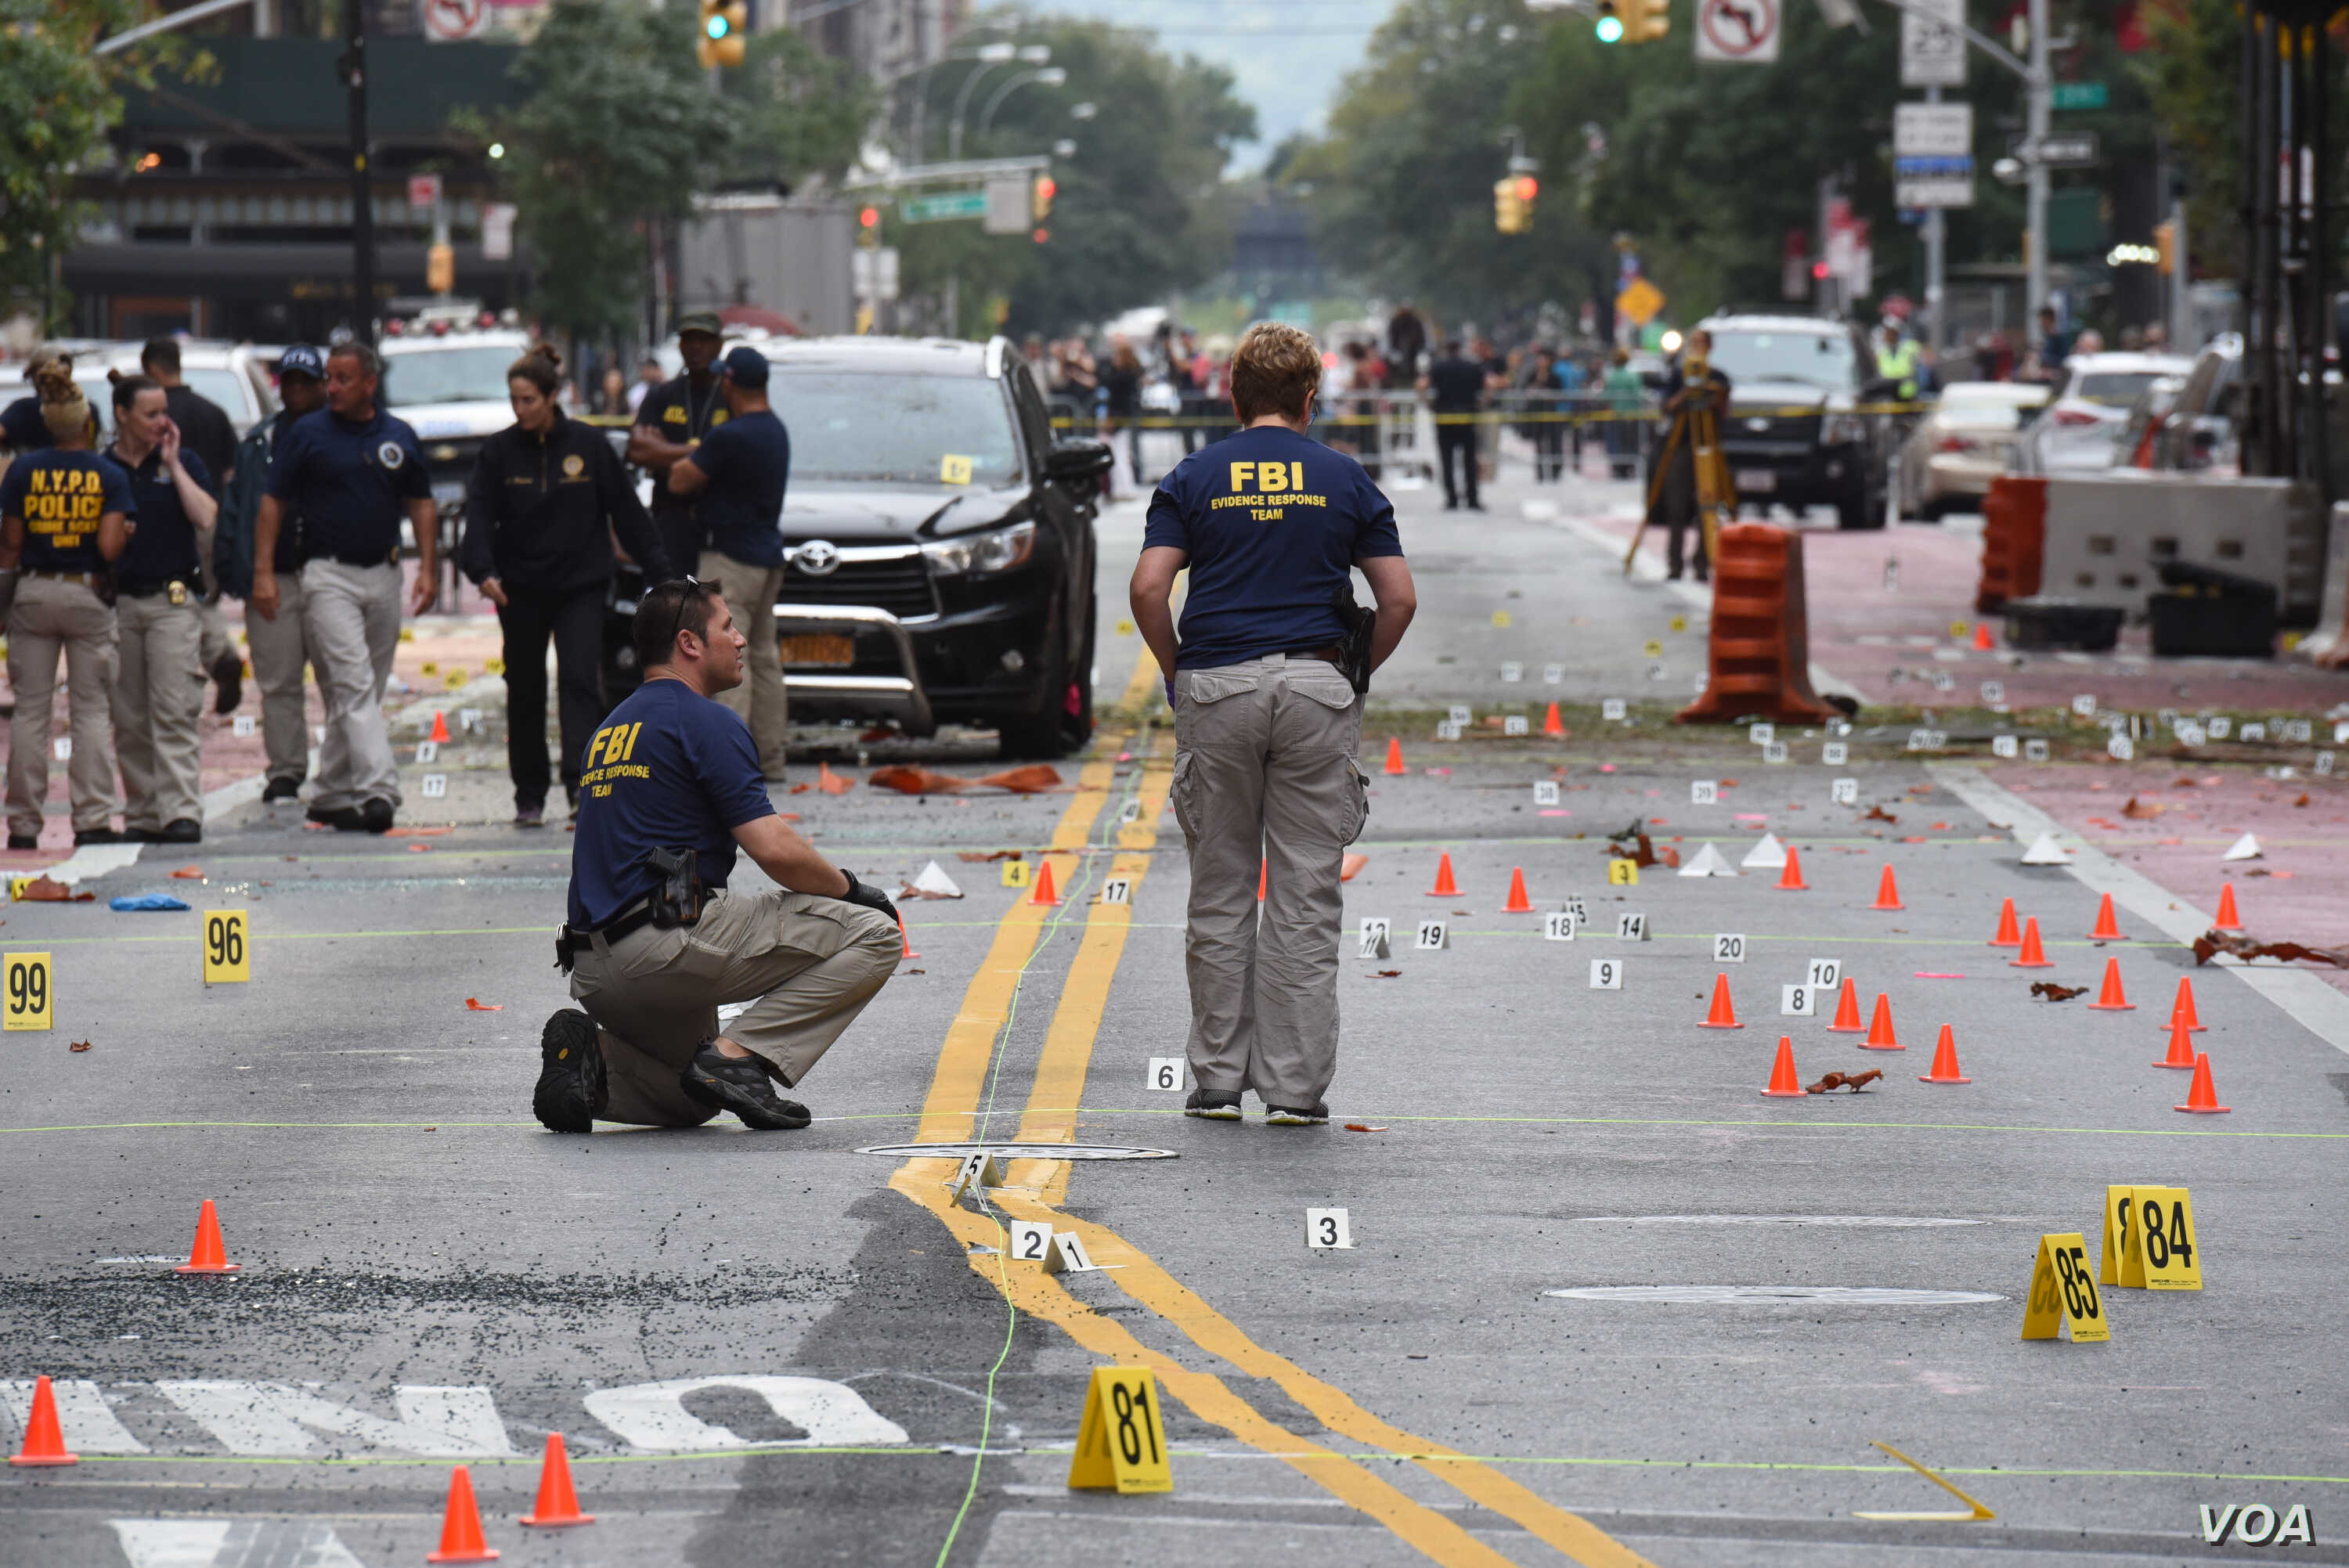 Governor Andrew M. Cuomo receives a briefing from authorities on the explosion in Manhattan on 23rd Street. (Photo: Don Pollard/ Office of Governor Andrew M. Cuomo)